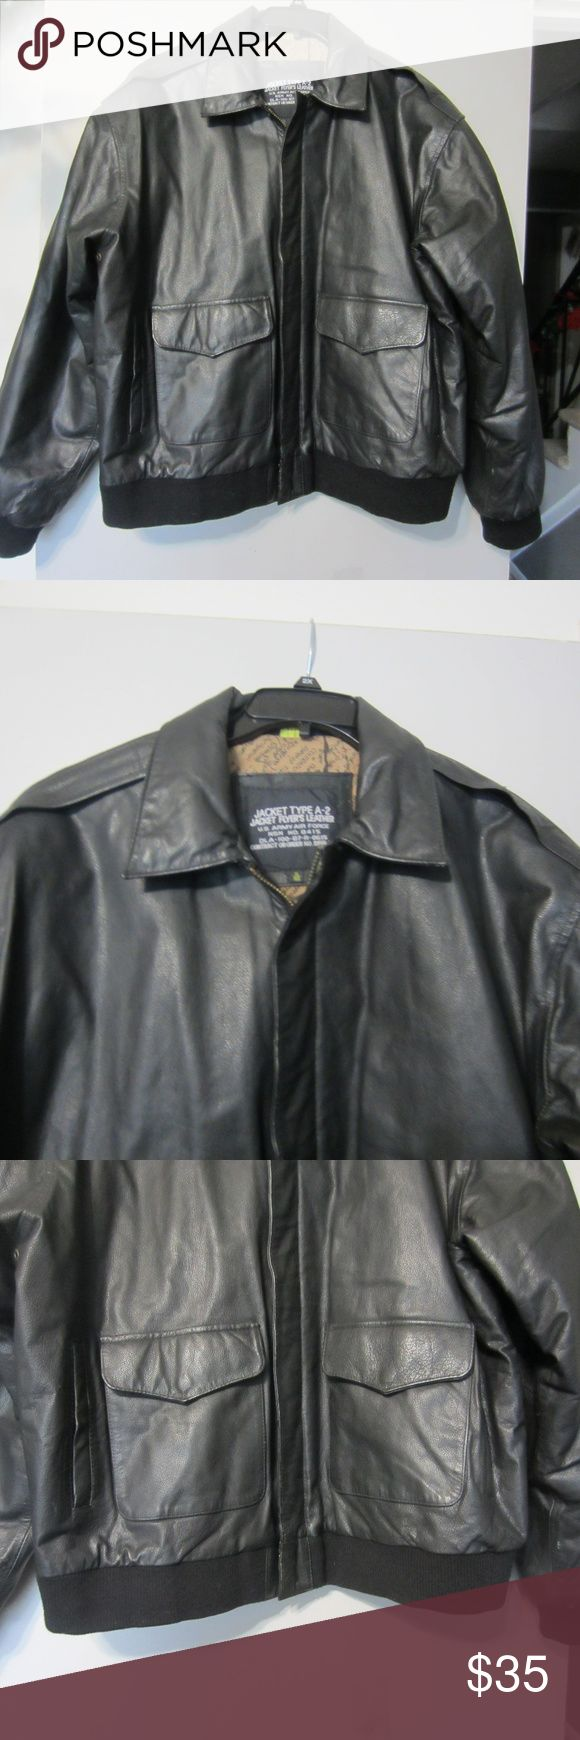 """Global Identity Gray Suede Leather Jacket Sz. XL Up for sale is this great looking Global Identity G-111 Men,s Gray Suede Leather Jacket Size XL In very good condition. No Stains or tares.                              No reasonable offers refused. Chest/Bust (armpit to armpit): 24"""" Shoulders (seam to seam): 24"""" Waist (6 in under bust): 25"""" Length (collar to hem): 26"""" Sleeve Length (shoulder to cuff): 24"""" Description: Great Casual Coat For The Colder Months. Global Identity Jackets & Coats…"""